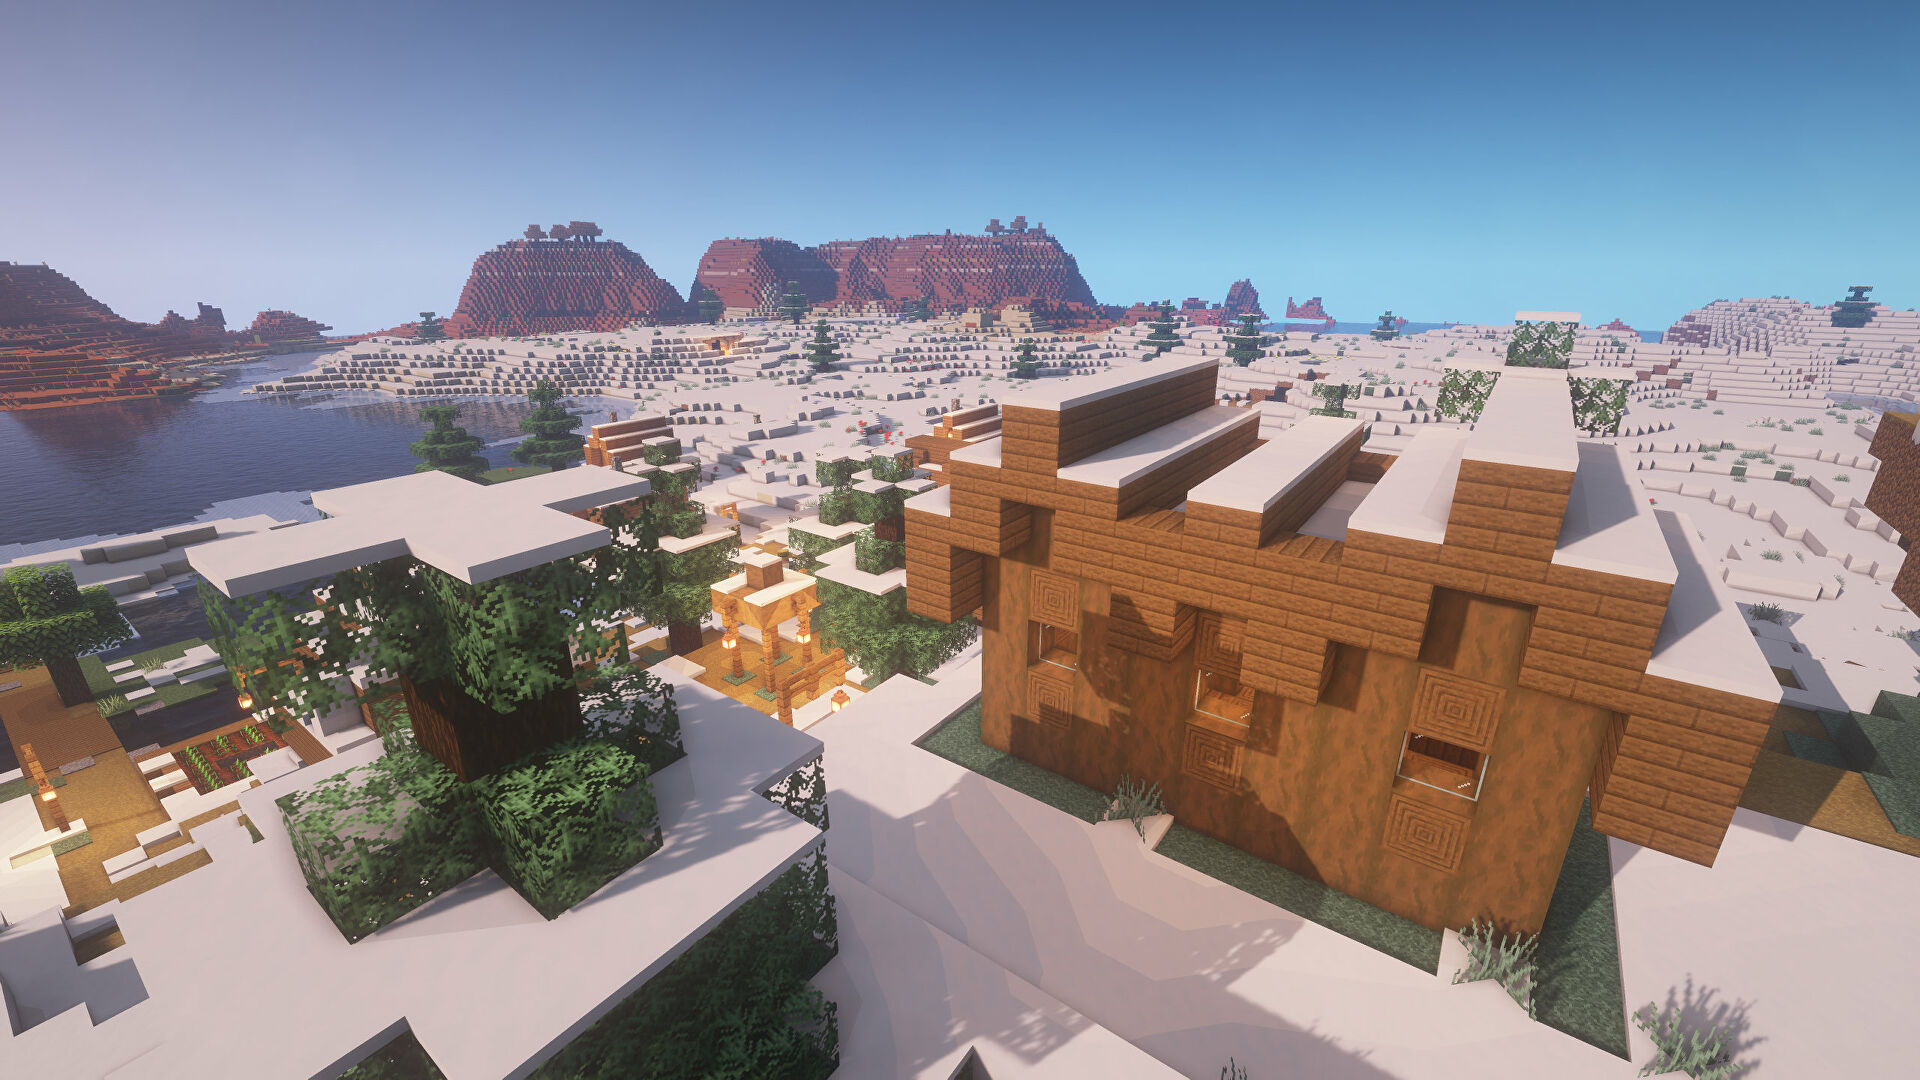 A Minecraft screenshot of a landscape displayed using the Quadral Texture Pack.